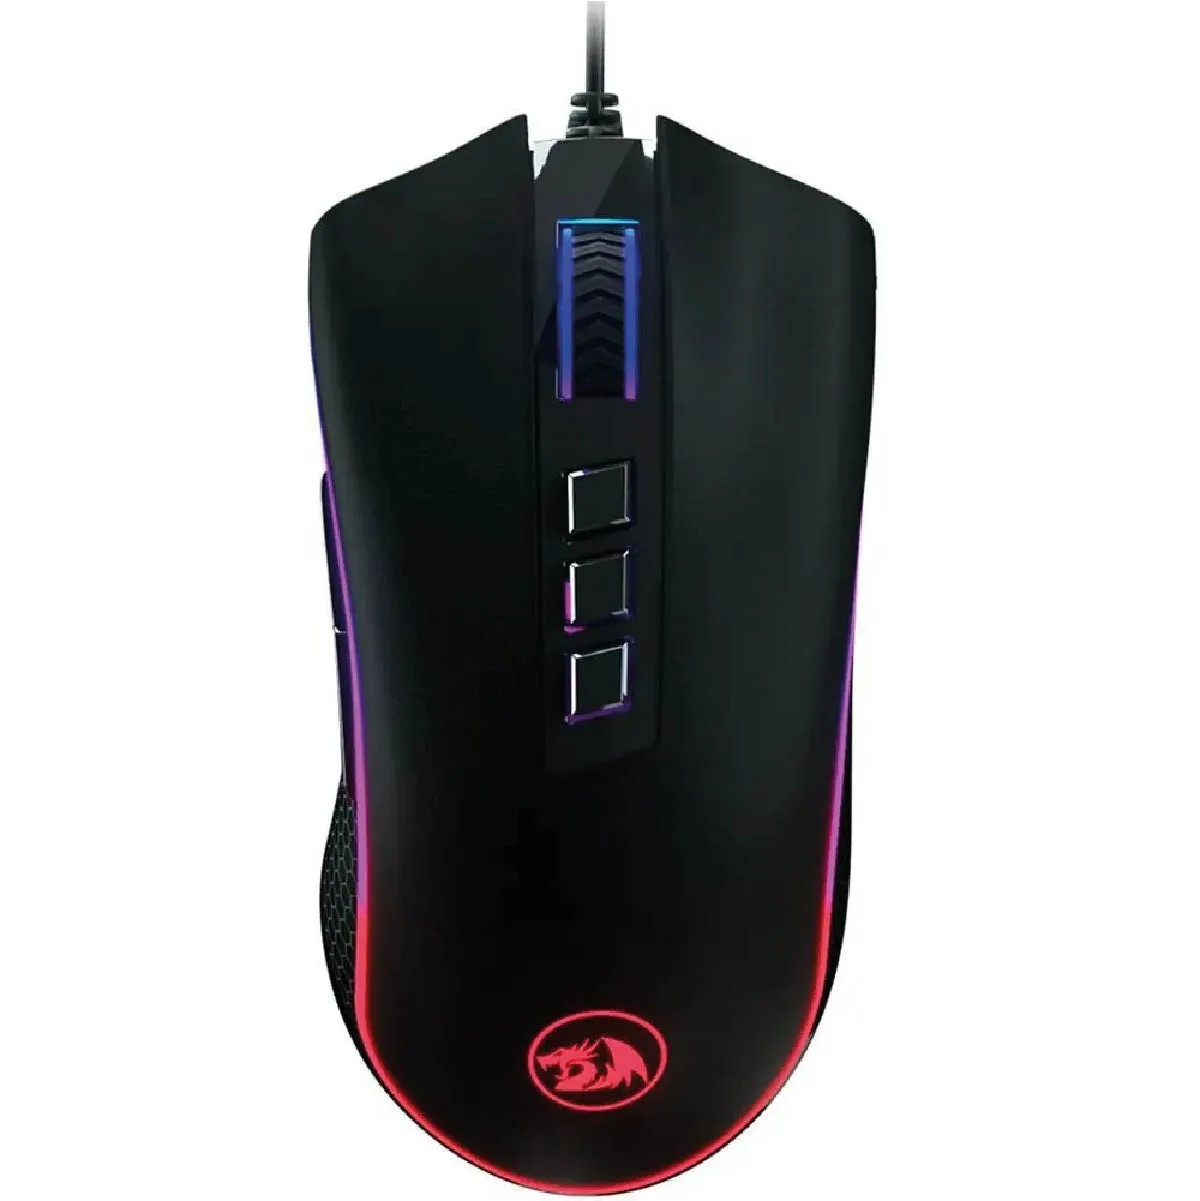 Mouse King Cobra Redragon Gamer M711-fps PIXART PMW3360 RGB